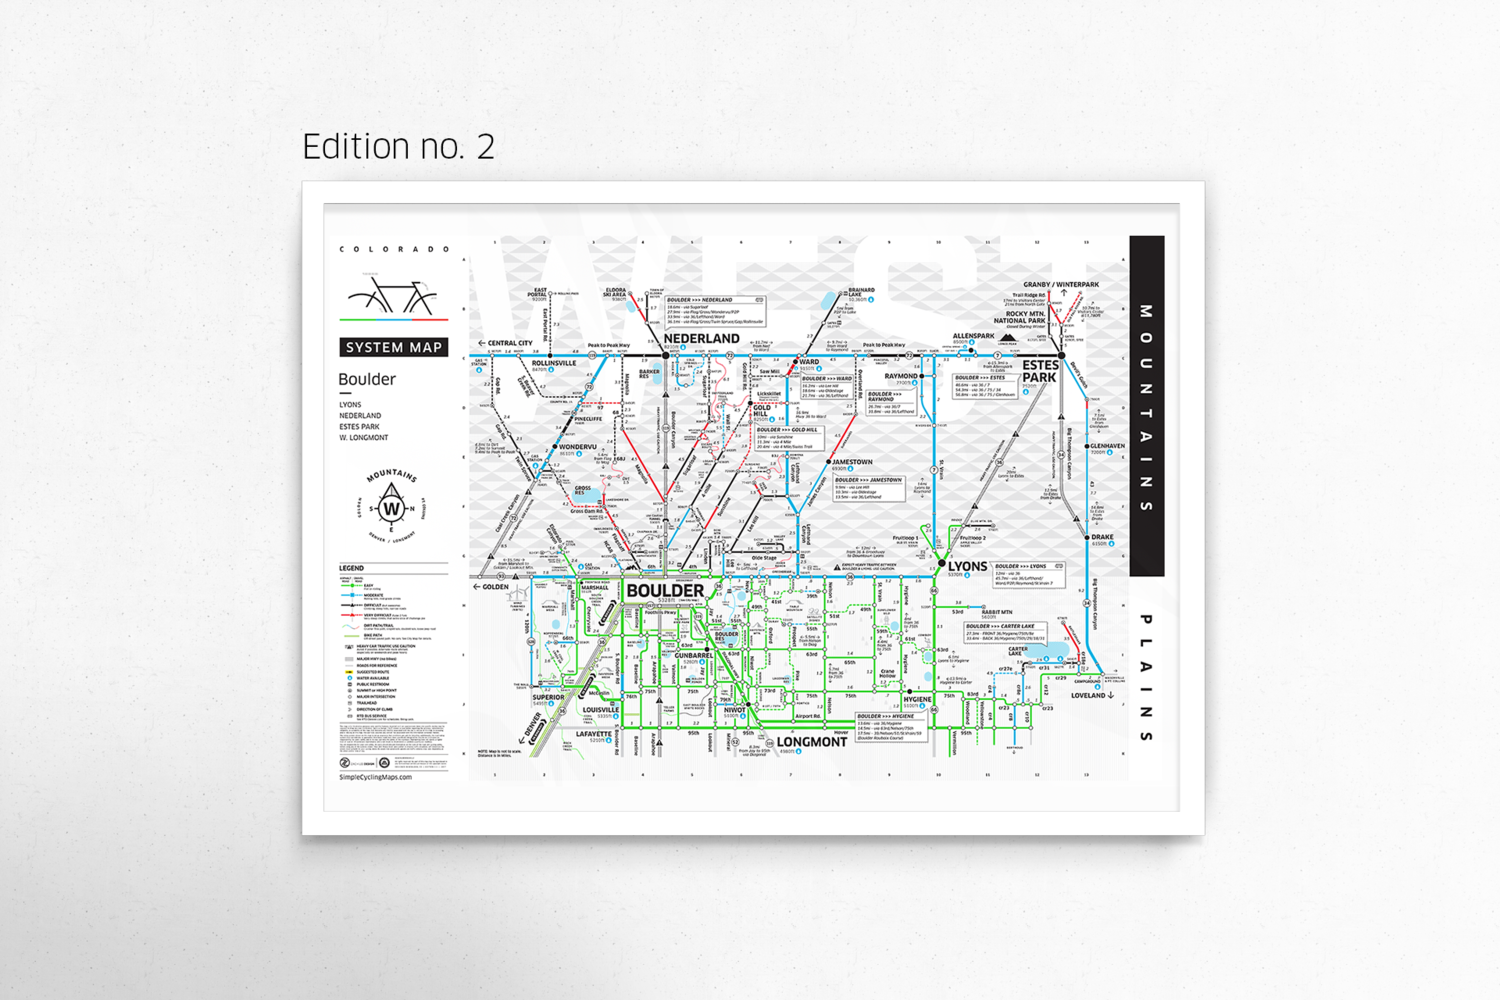 Boulder system map poster edition 2 boulder bike map boulder system map poster edition 2 ccuart Choice Image